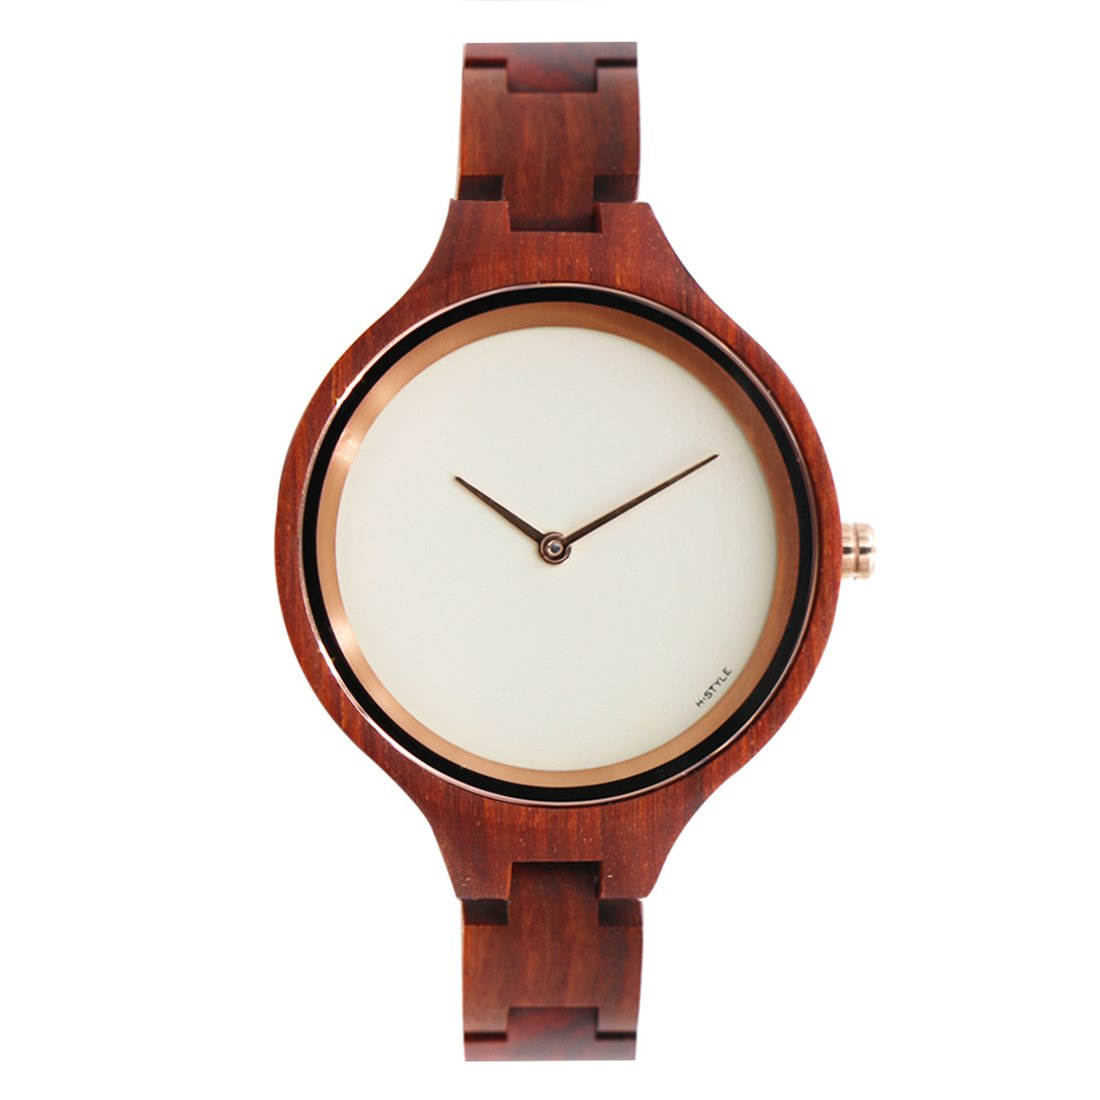 Hstyle Women's Handmade Real Rosewood Wooden Watches with Sapphire Glass